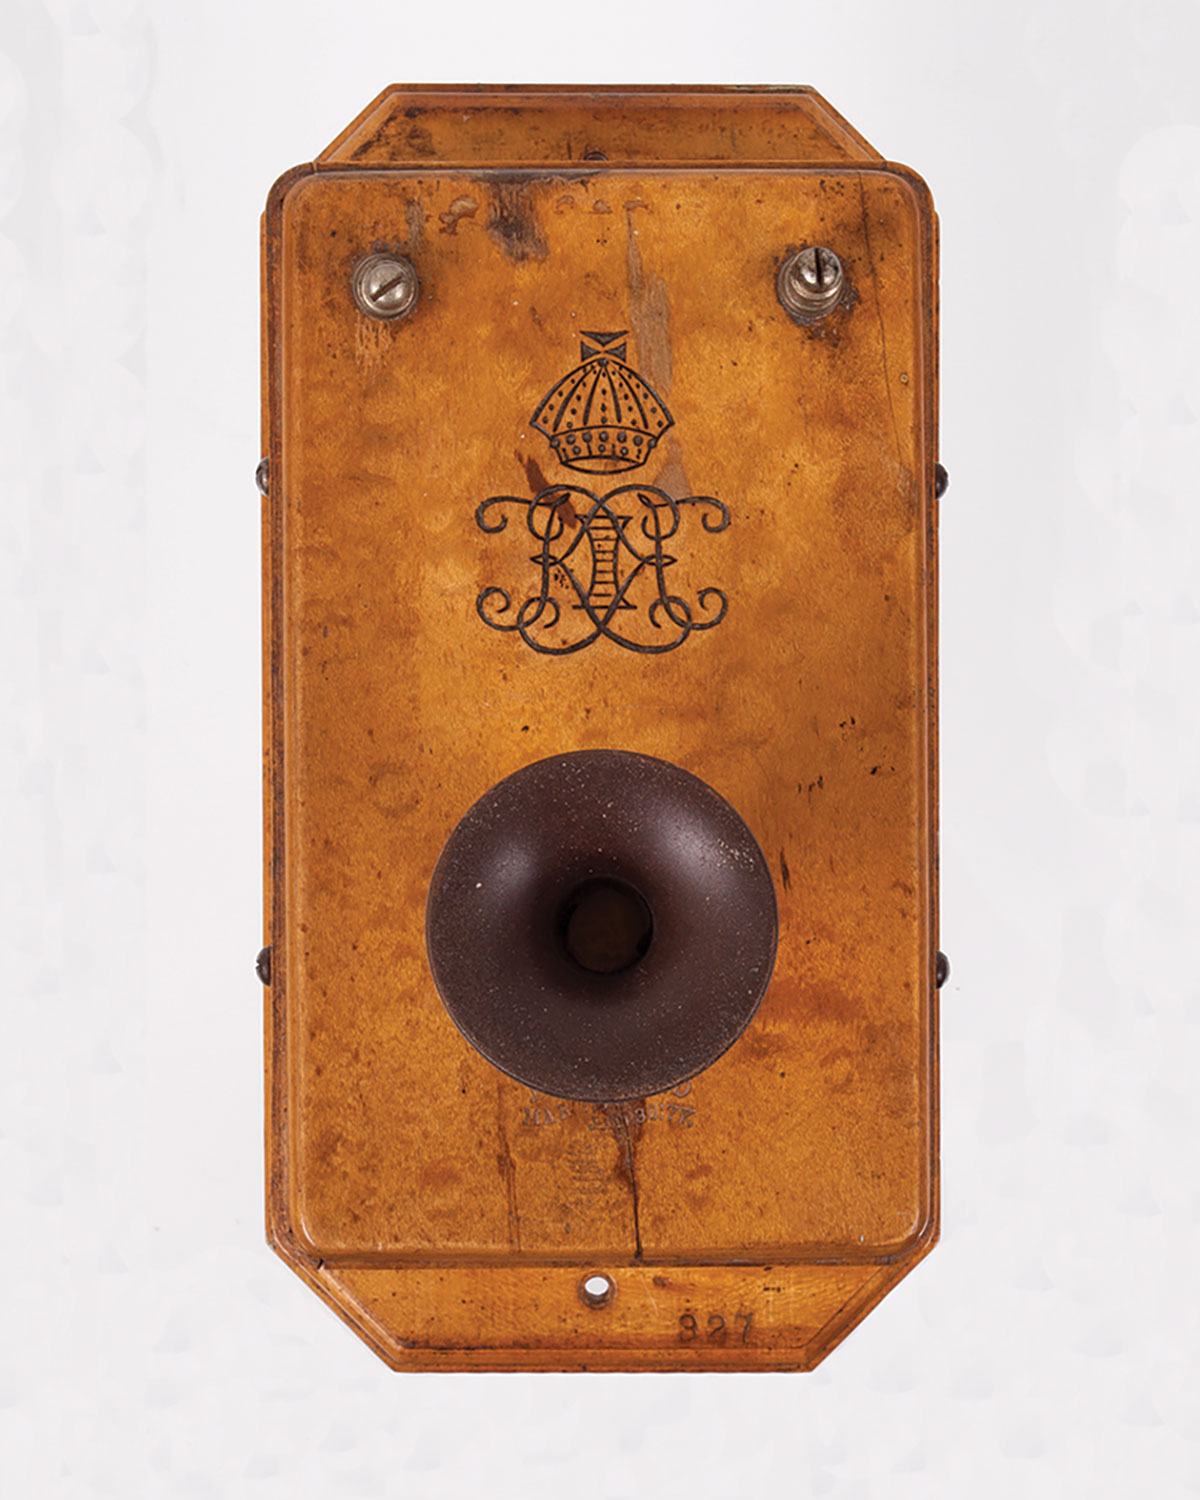 Late 19th century telephone